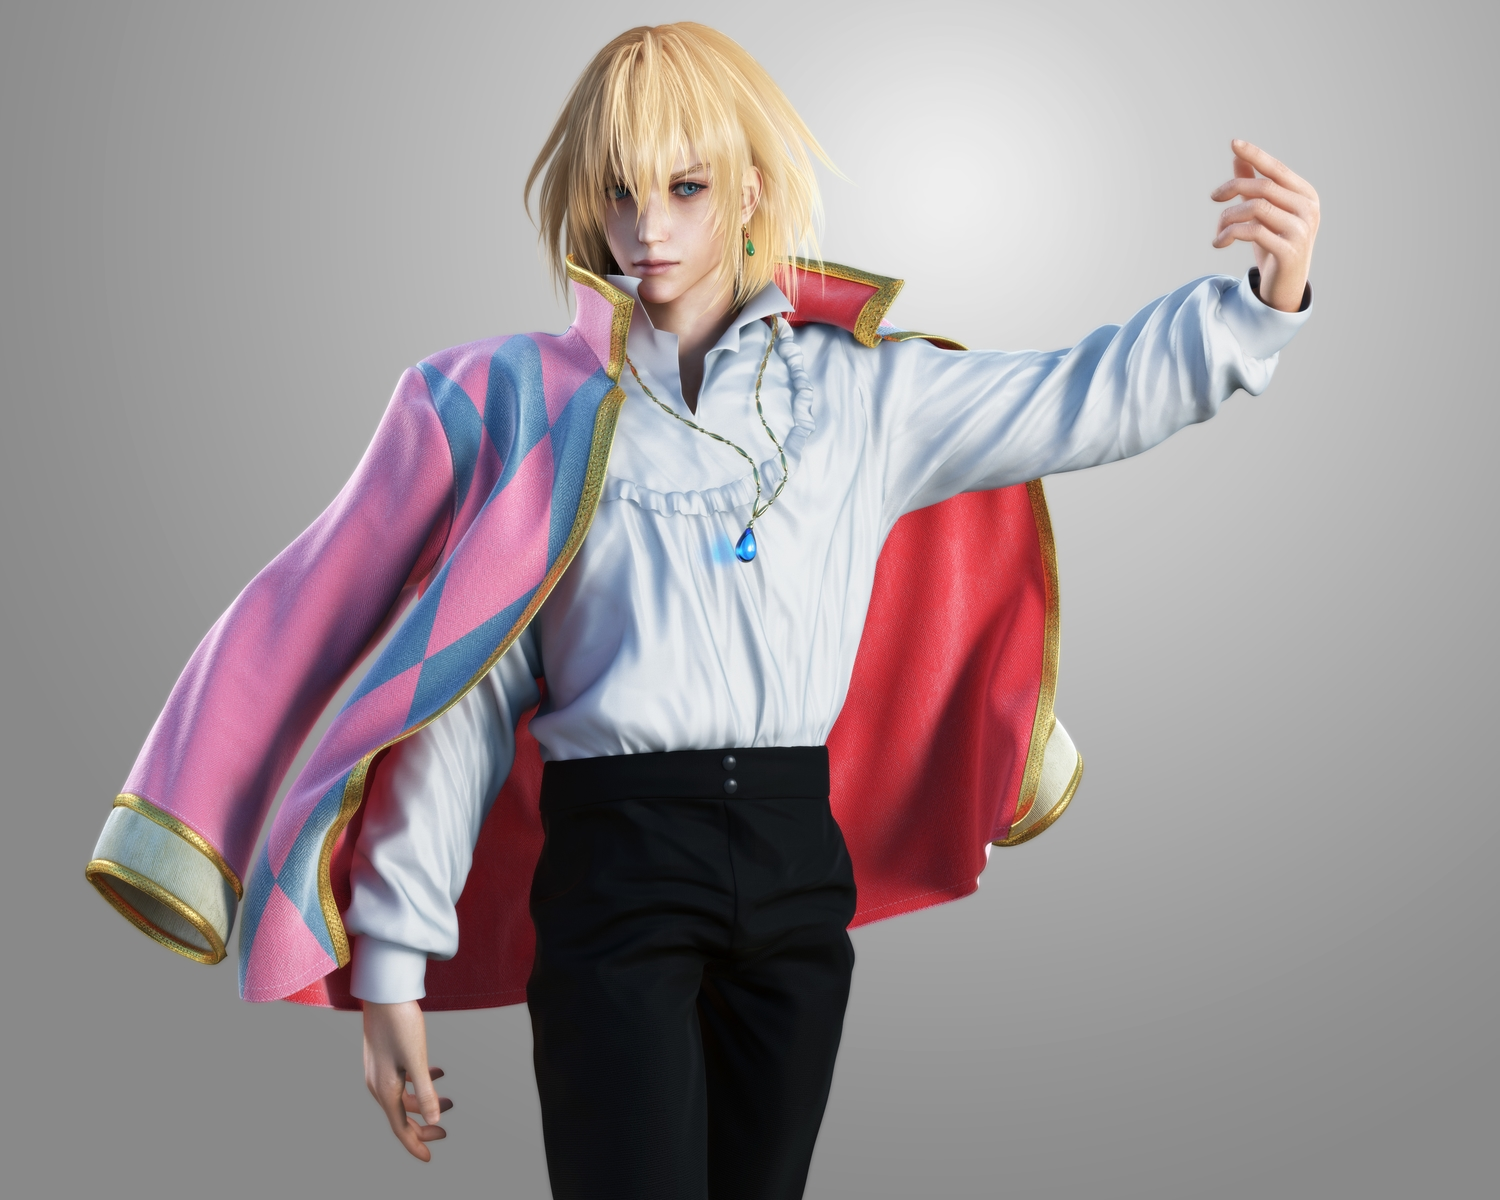 3d all_male blonde_hair blue_eyes gradient gray howl howl's_moving_castle ikedan male necklace realistic short_hair